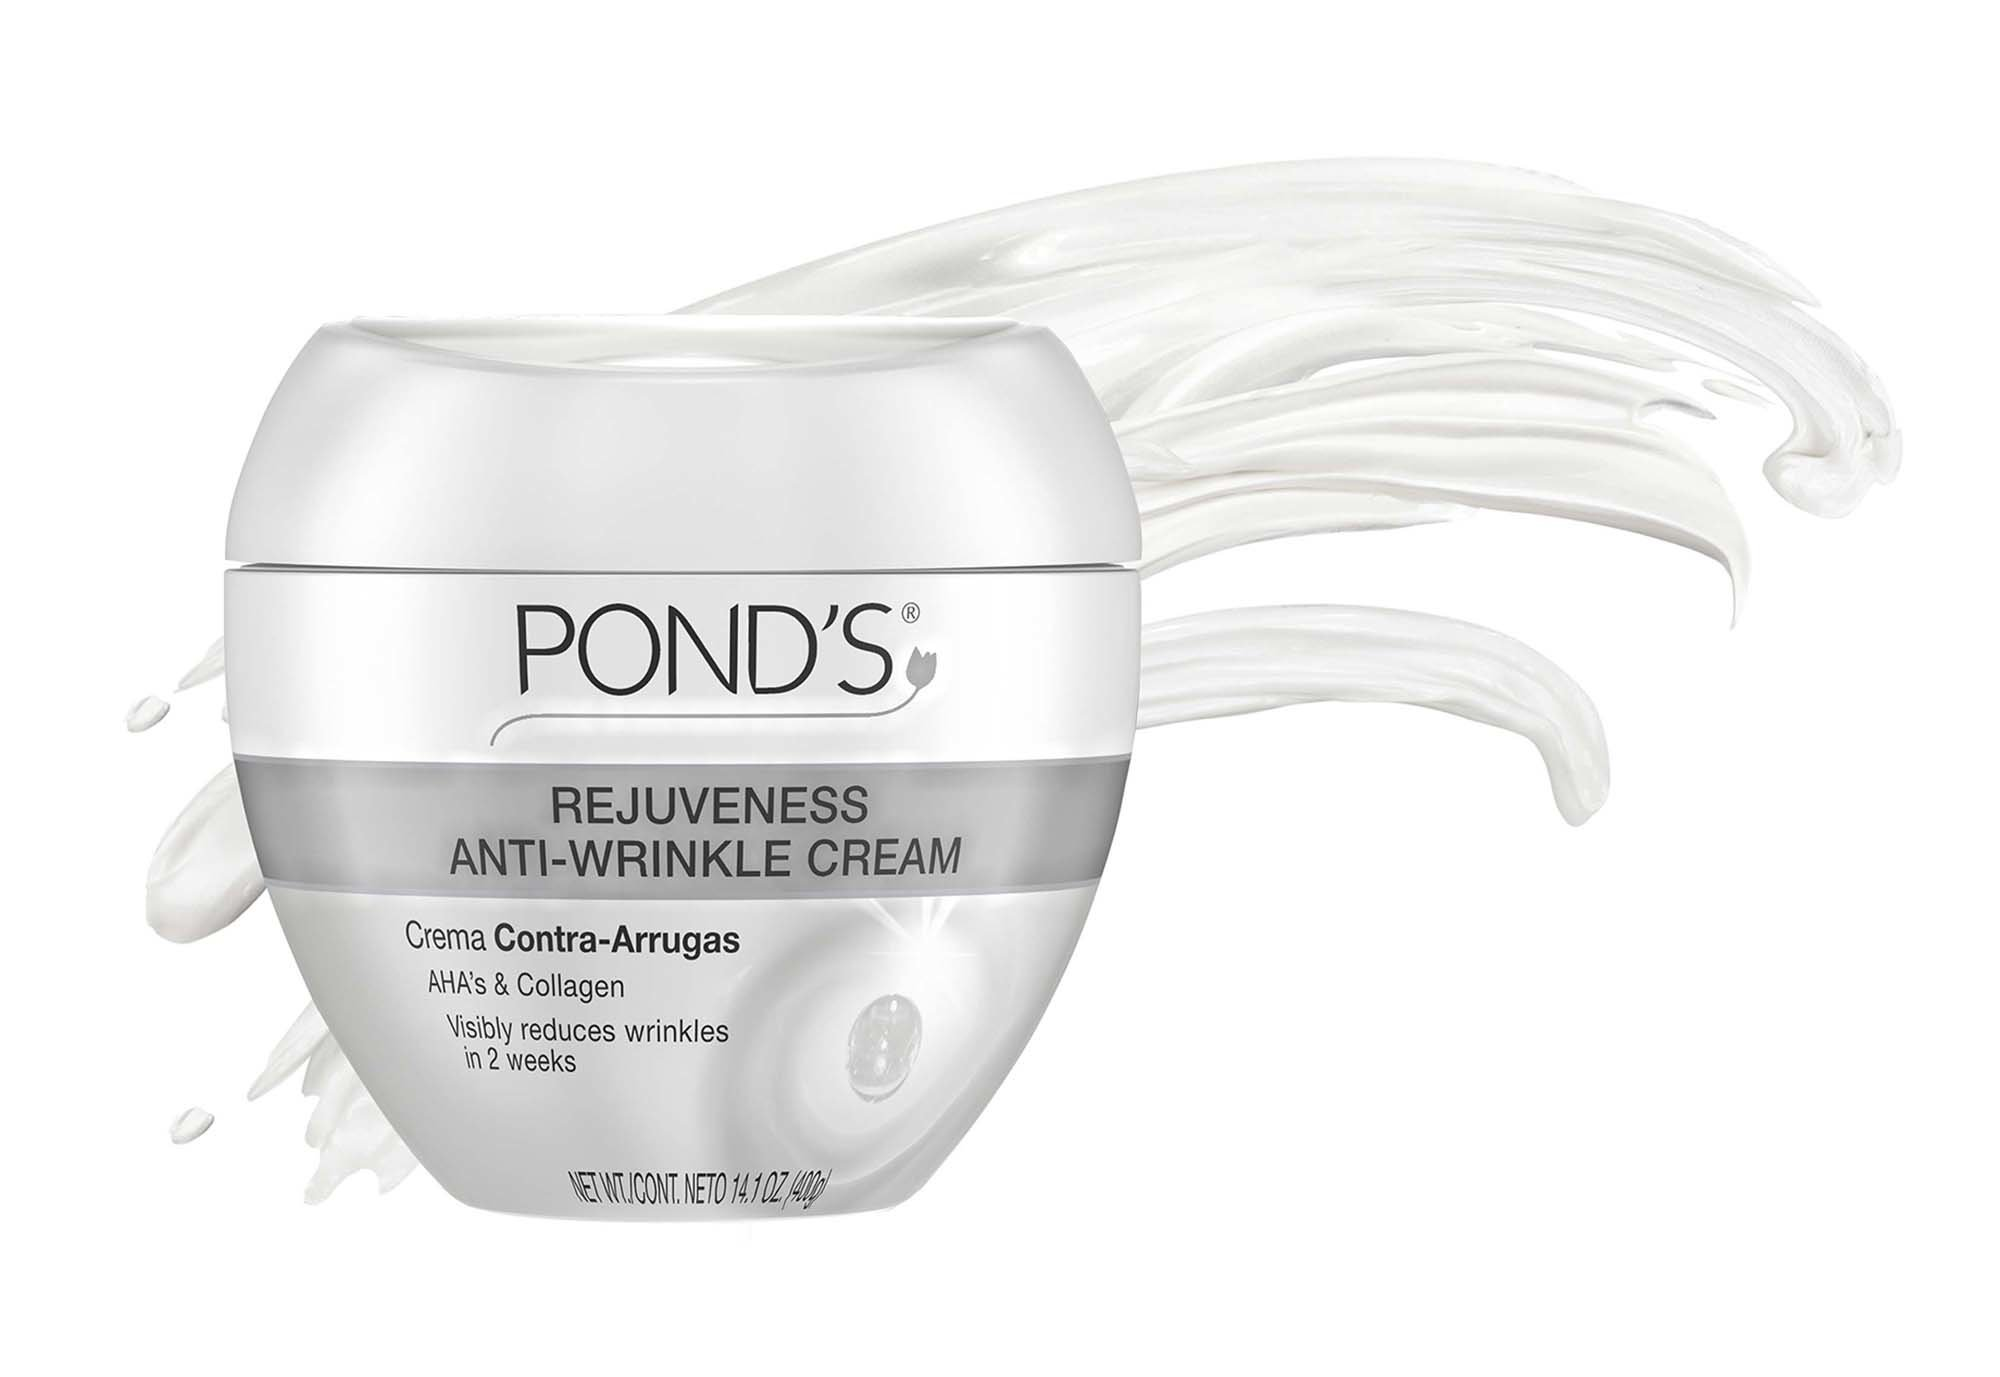 One Jar of This Anti-Aging Face Cream Is Sold Every 10 Seconds e8adaad7dc14819950ac0faa0bb9c29a